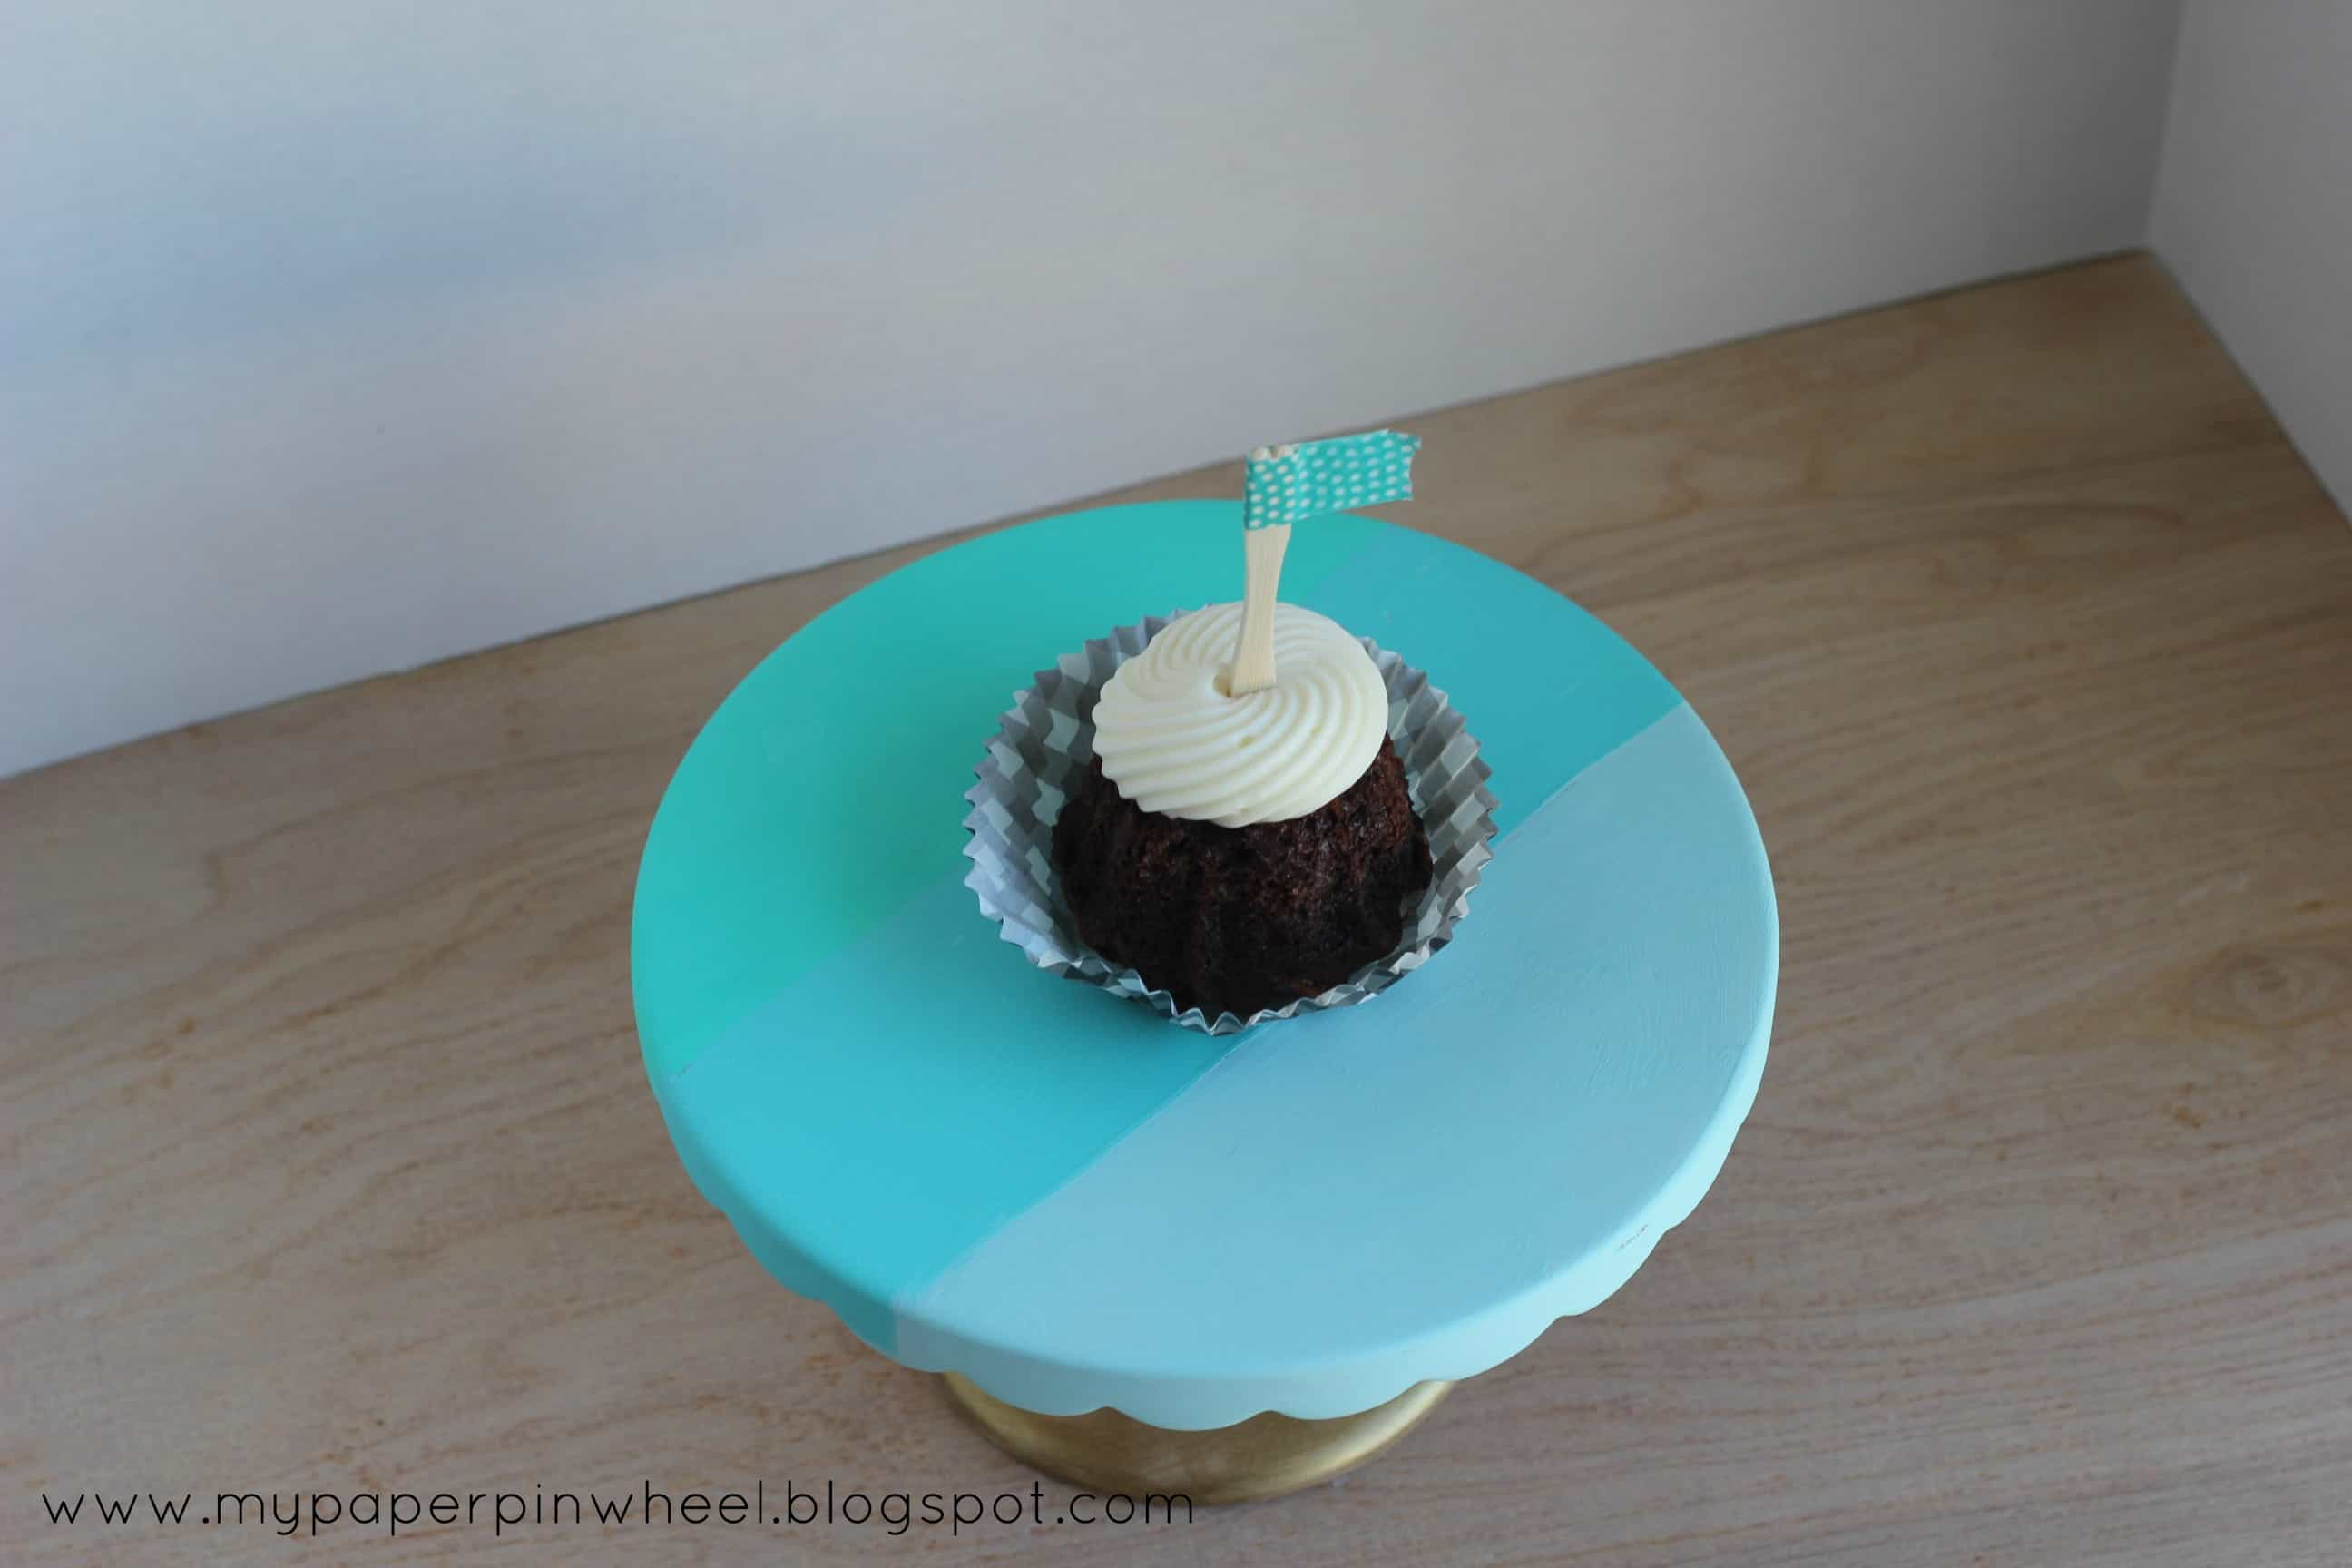 23. OMBRE CAKE STAND